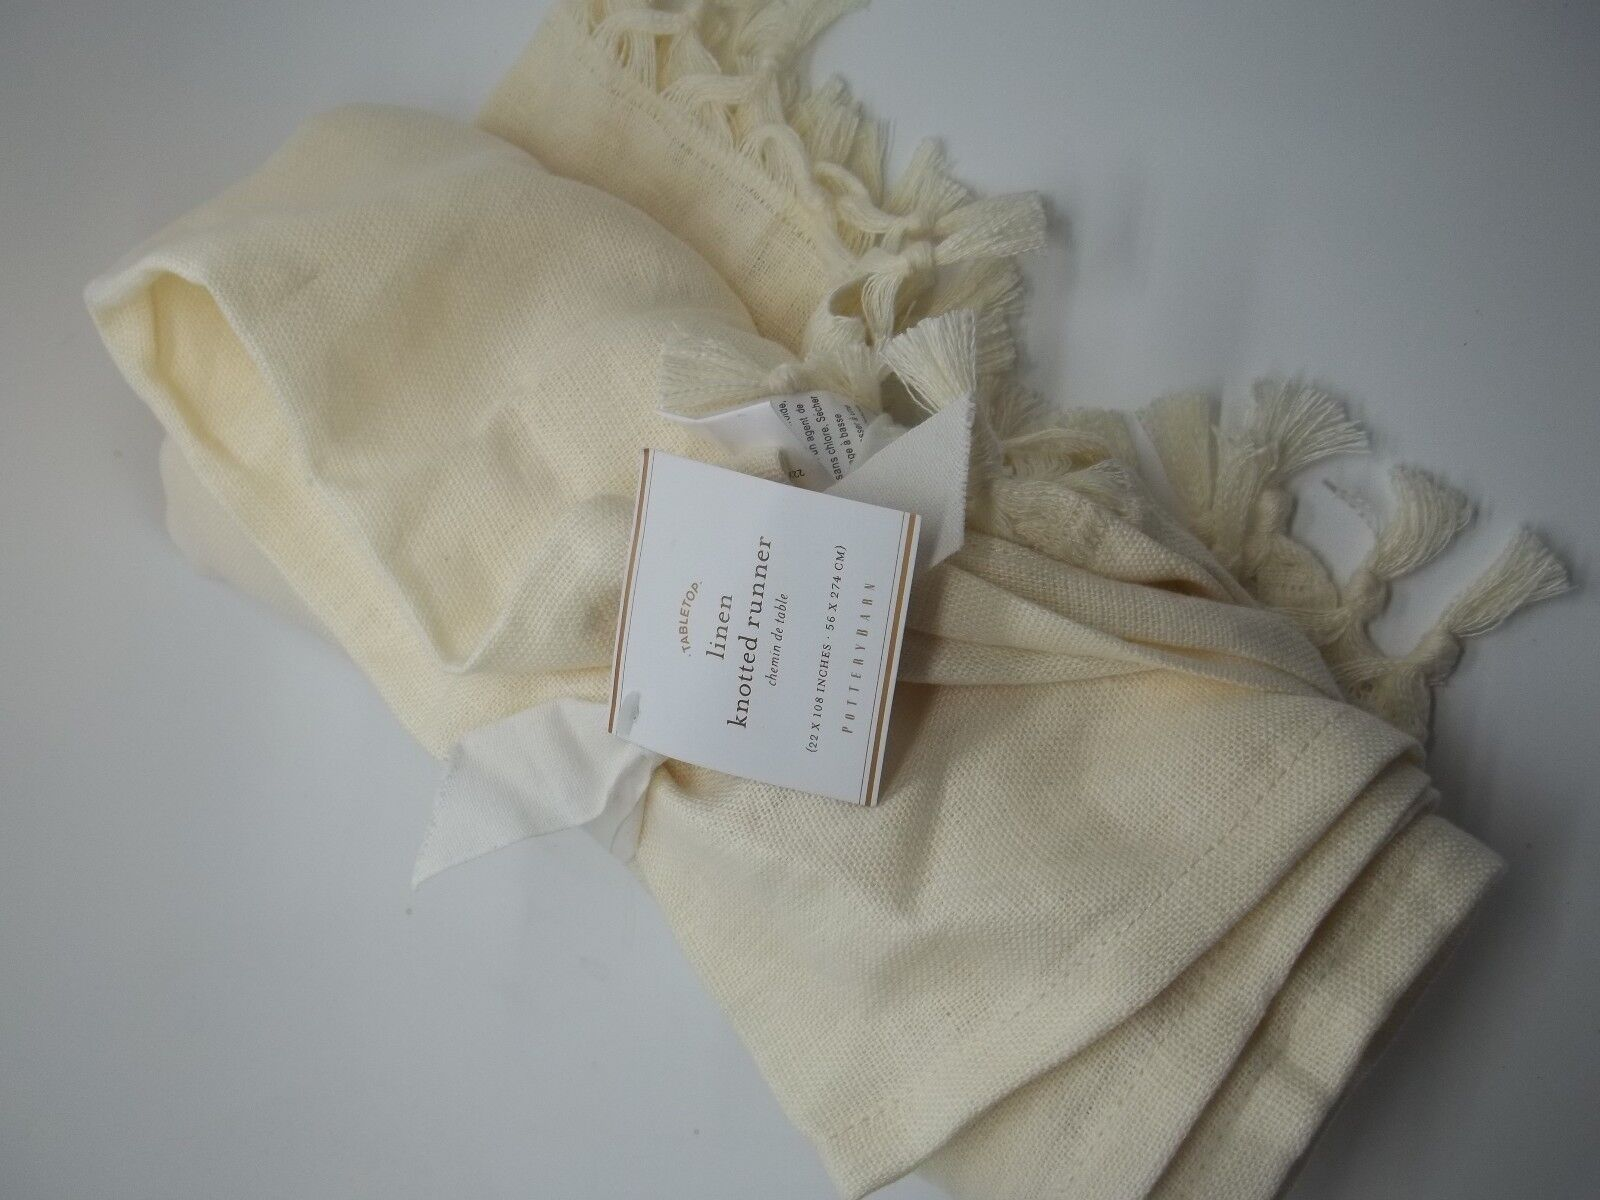 Pottery Barn Linen Knotted Table Runner Ivory 108   1